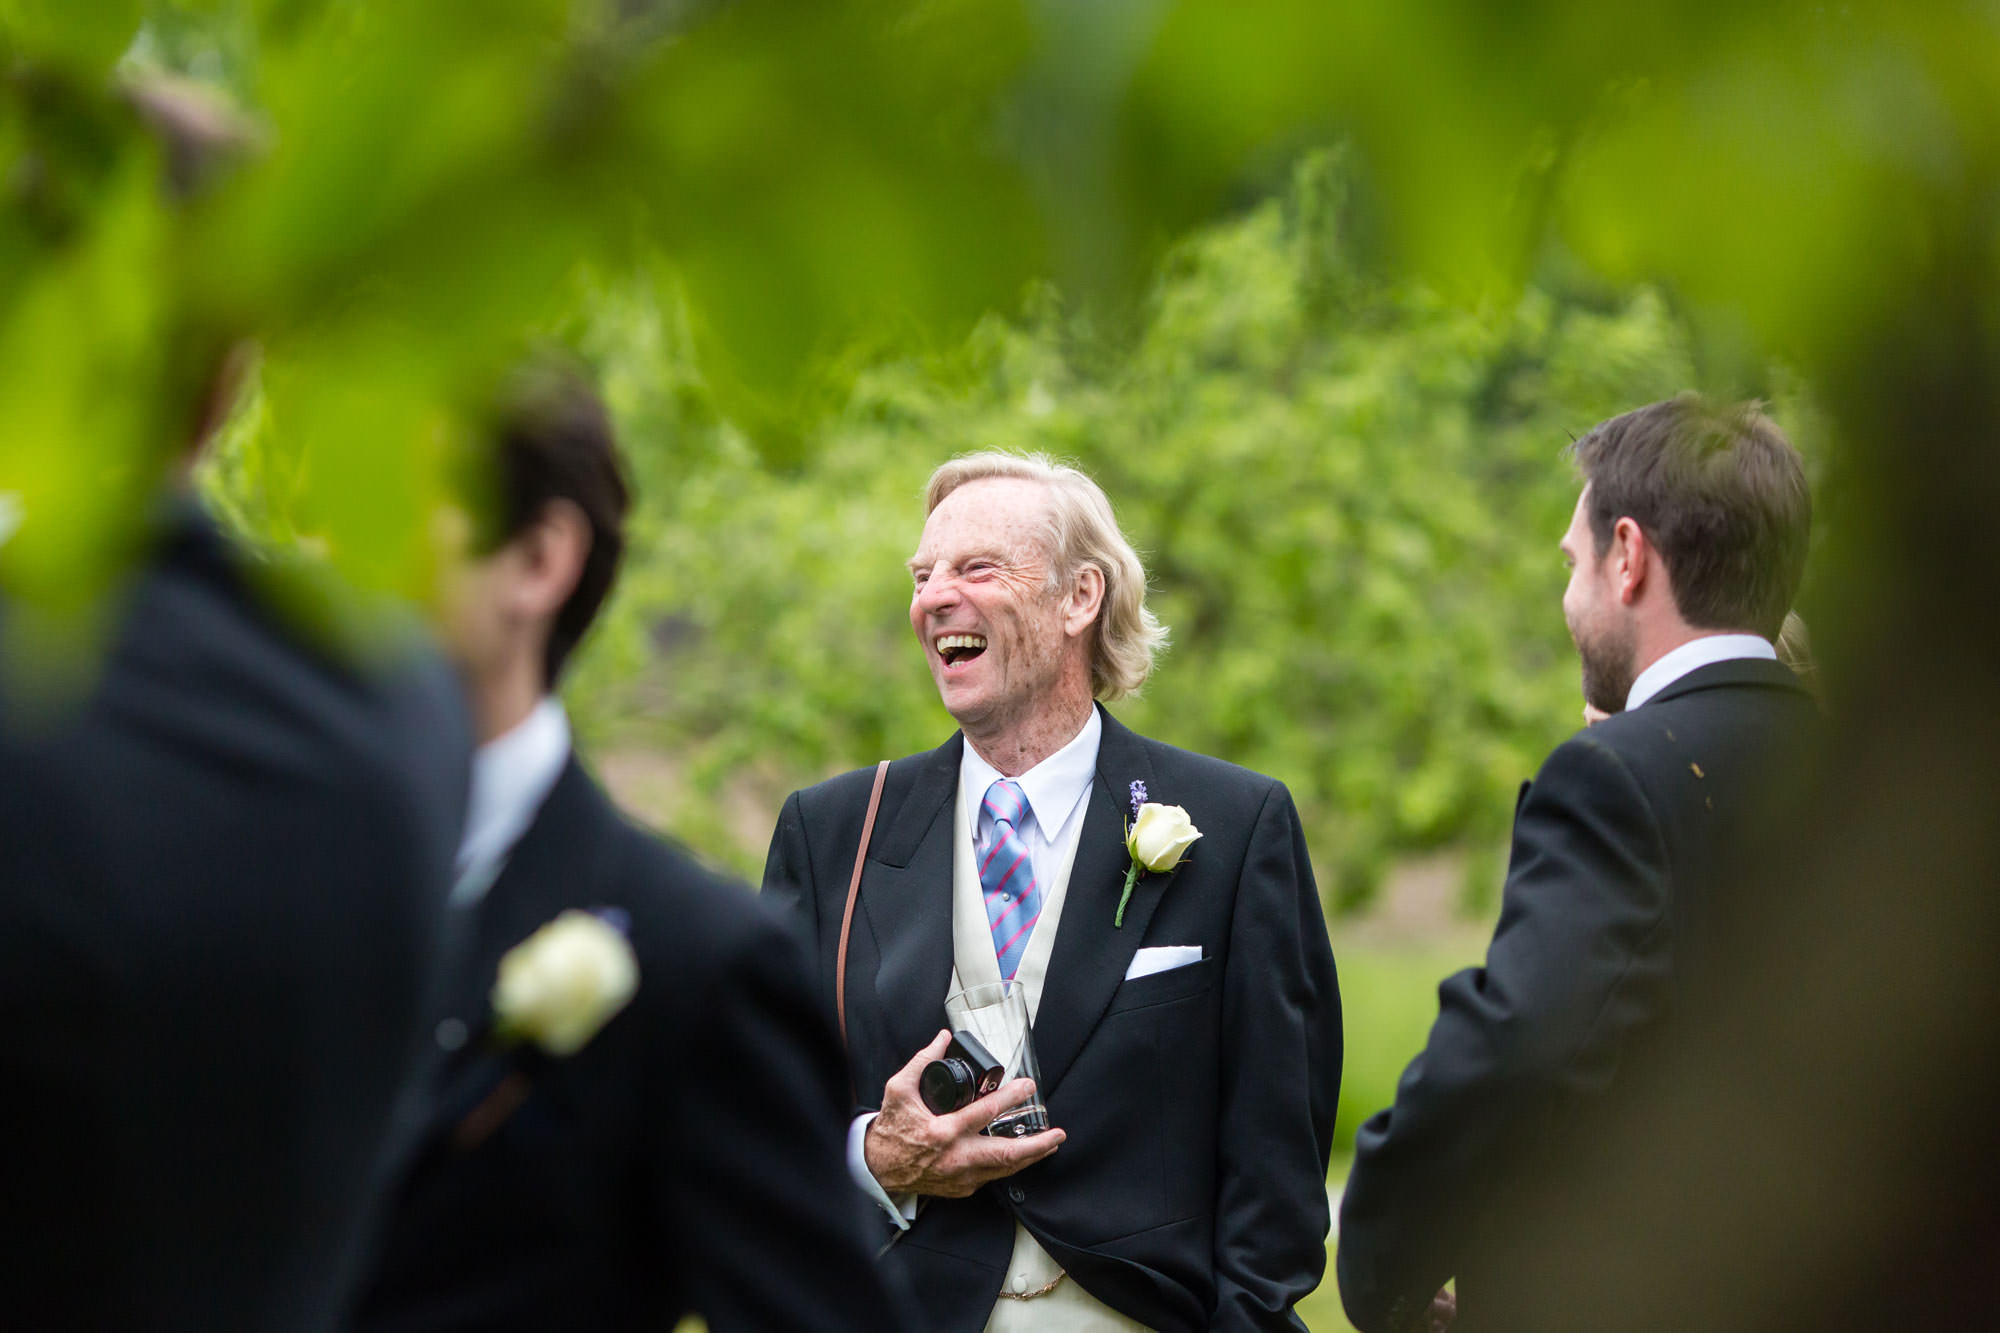 Grooms dad laughs with his friends